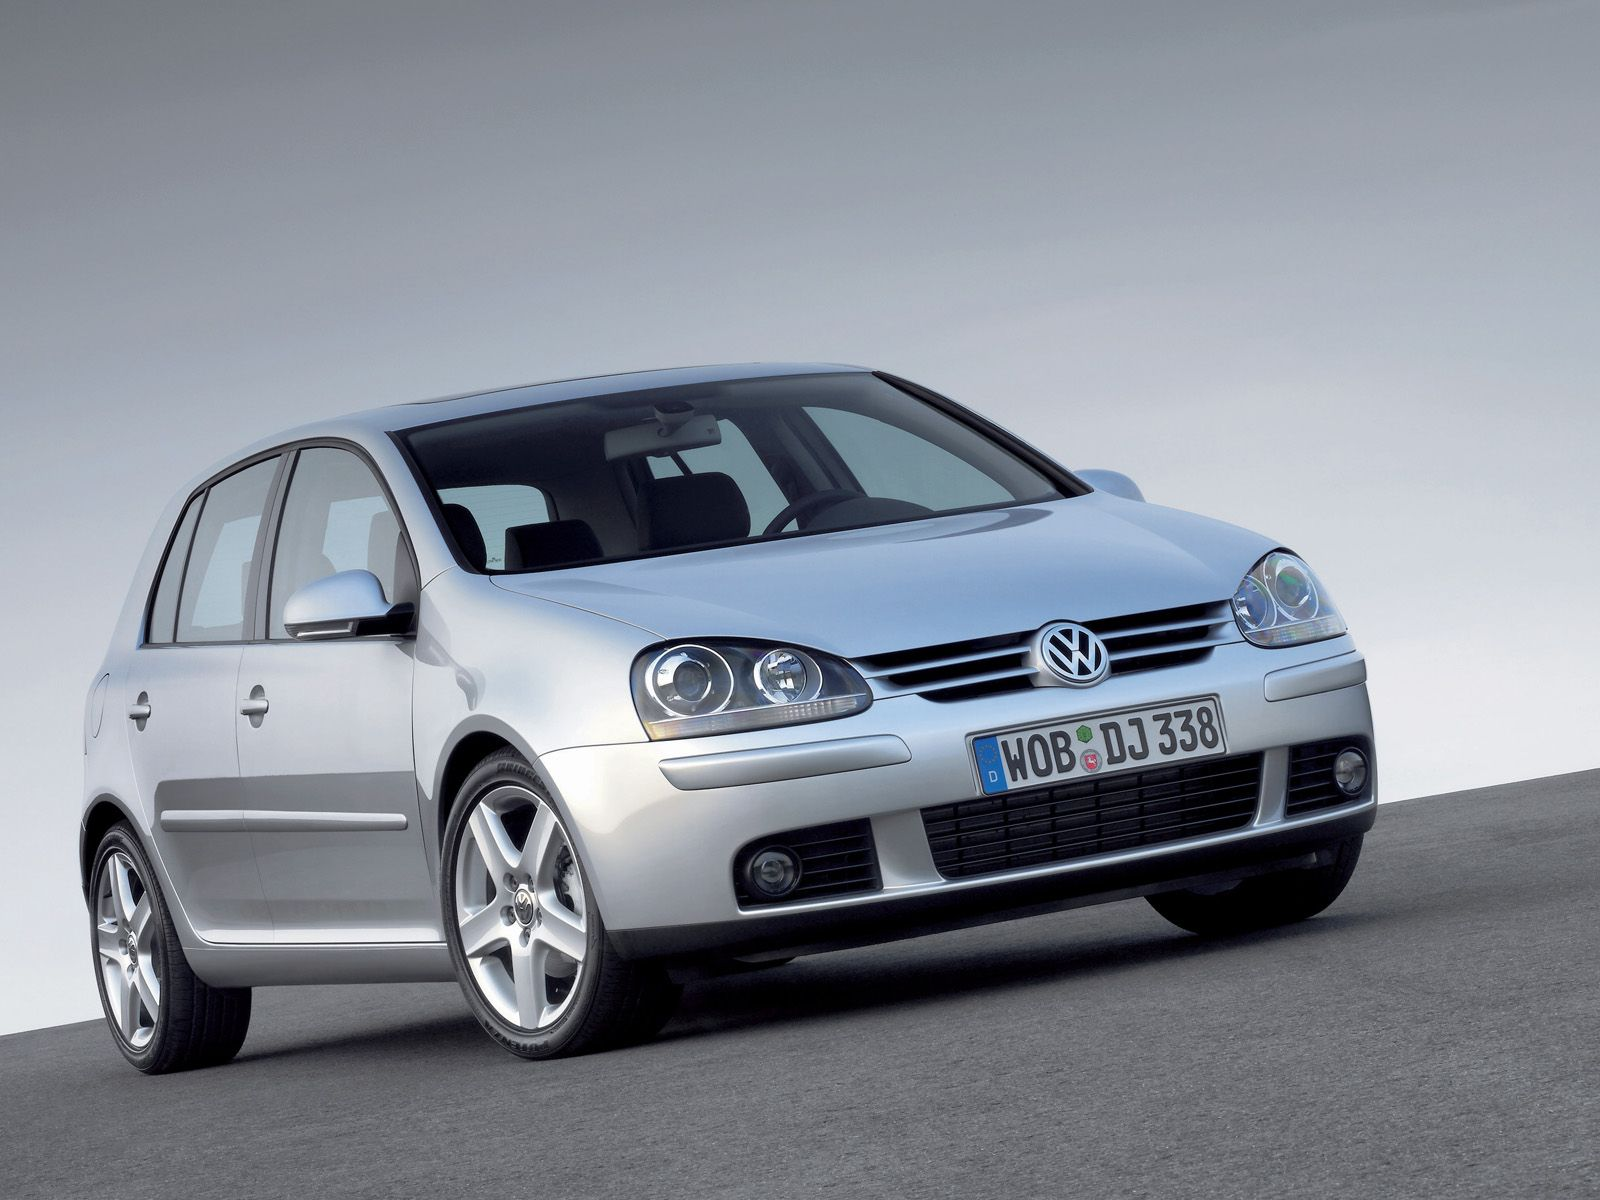 volkswagen golf v picture 9521 volkswagen photo gallery. Black Bedroom Furniture Sets. Home Design Ideas